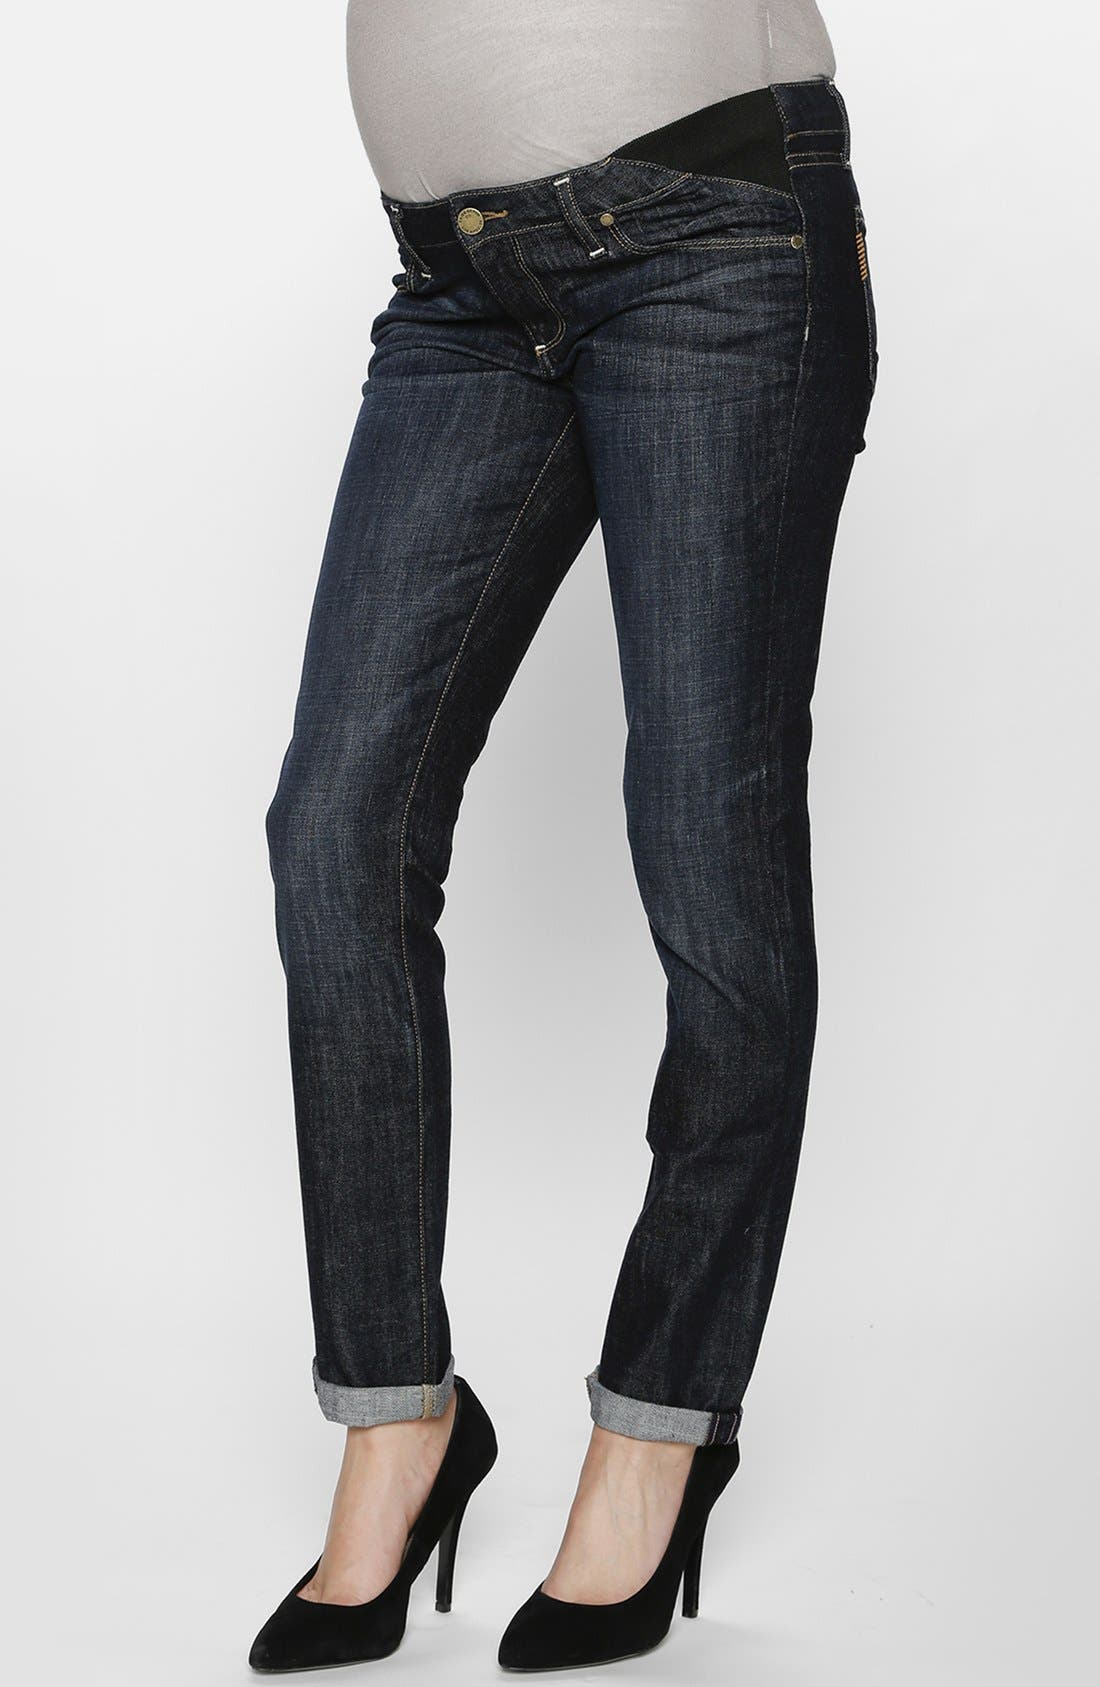 Main Image - Paige Denim 'Jimmy Jimmy' Skinny Boyfriend Maternity Jeans (Blue)